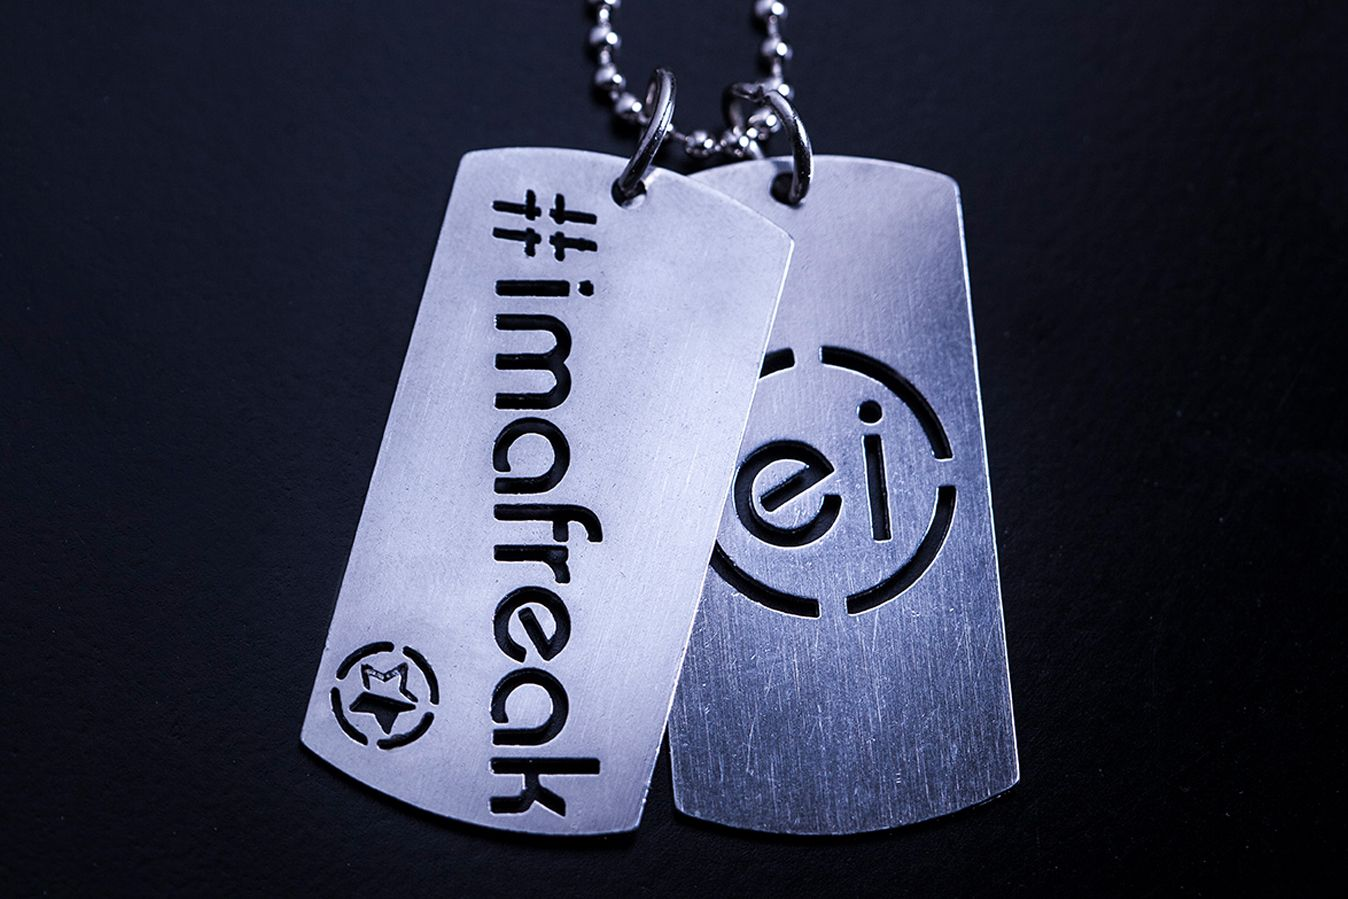 Get the limited edition Enrique #IMAFREAK star tags for only $24.95! 30% off. Free shipping in USA. 4 days only.